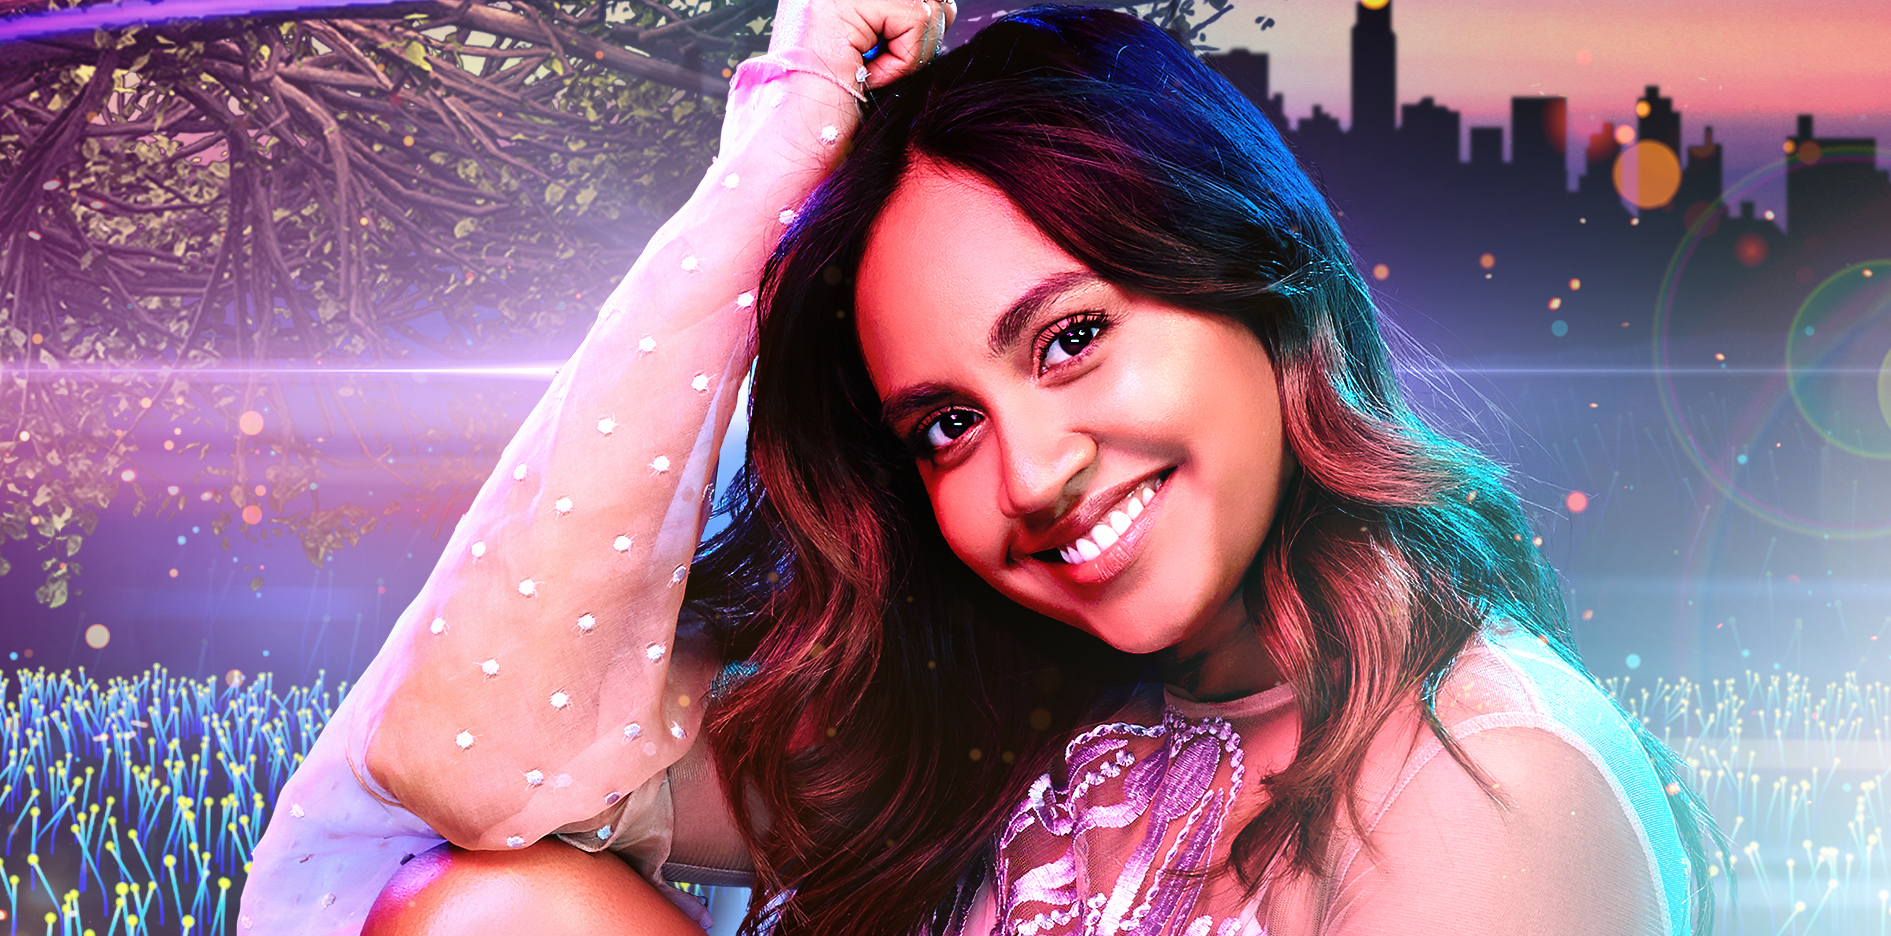 JESSICA MAUBOY 'SONGS FROM THE ORIGINAL 7 SERIES – THE SECRET DAUGHTER SEASON TWO' AVAILABLE FOR PRE-ORDER NOW!